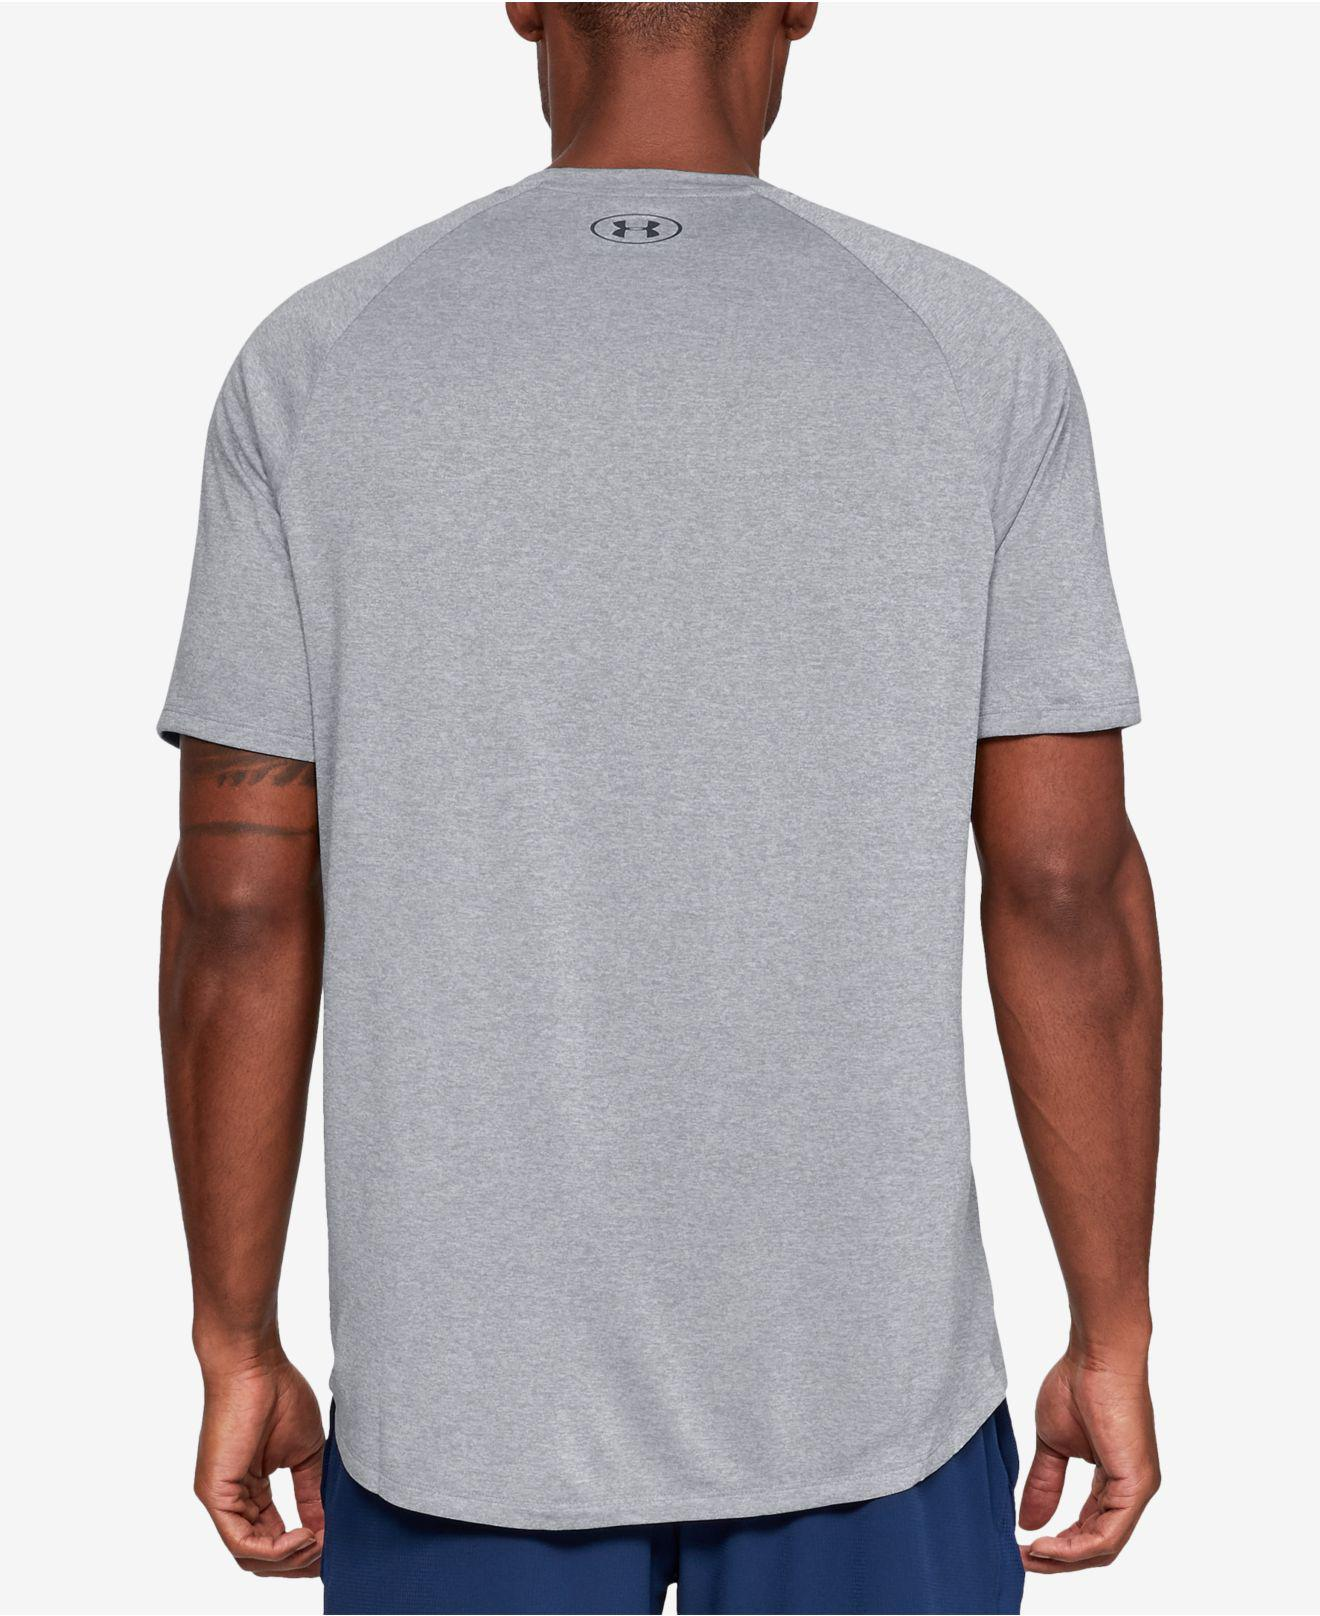 25502ec8 Lyst - Under Armour Tech Short Sleeve Tee in Gray for Men - Save 24%